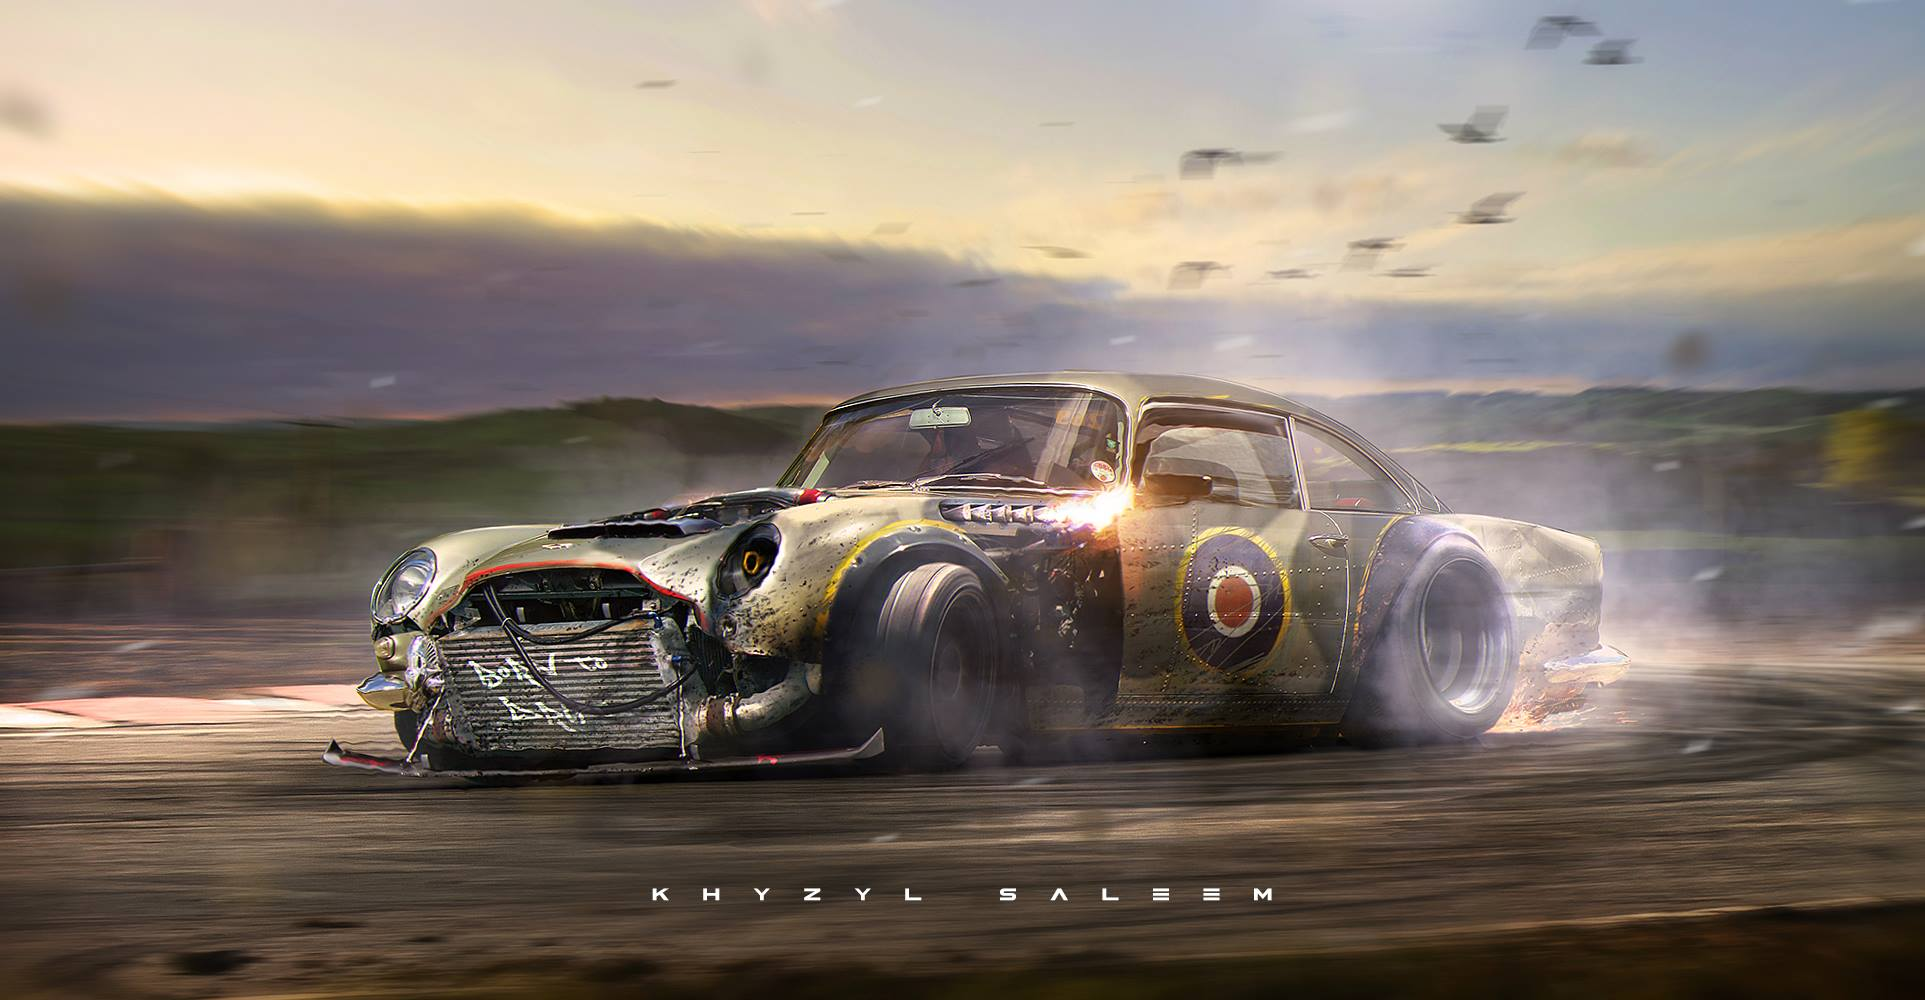 4k Wallpapers Exotic Super Sports Cars Aston Martin Db5 Becomes Supermarine Spitfire That Drifts